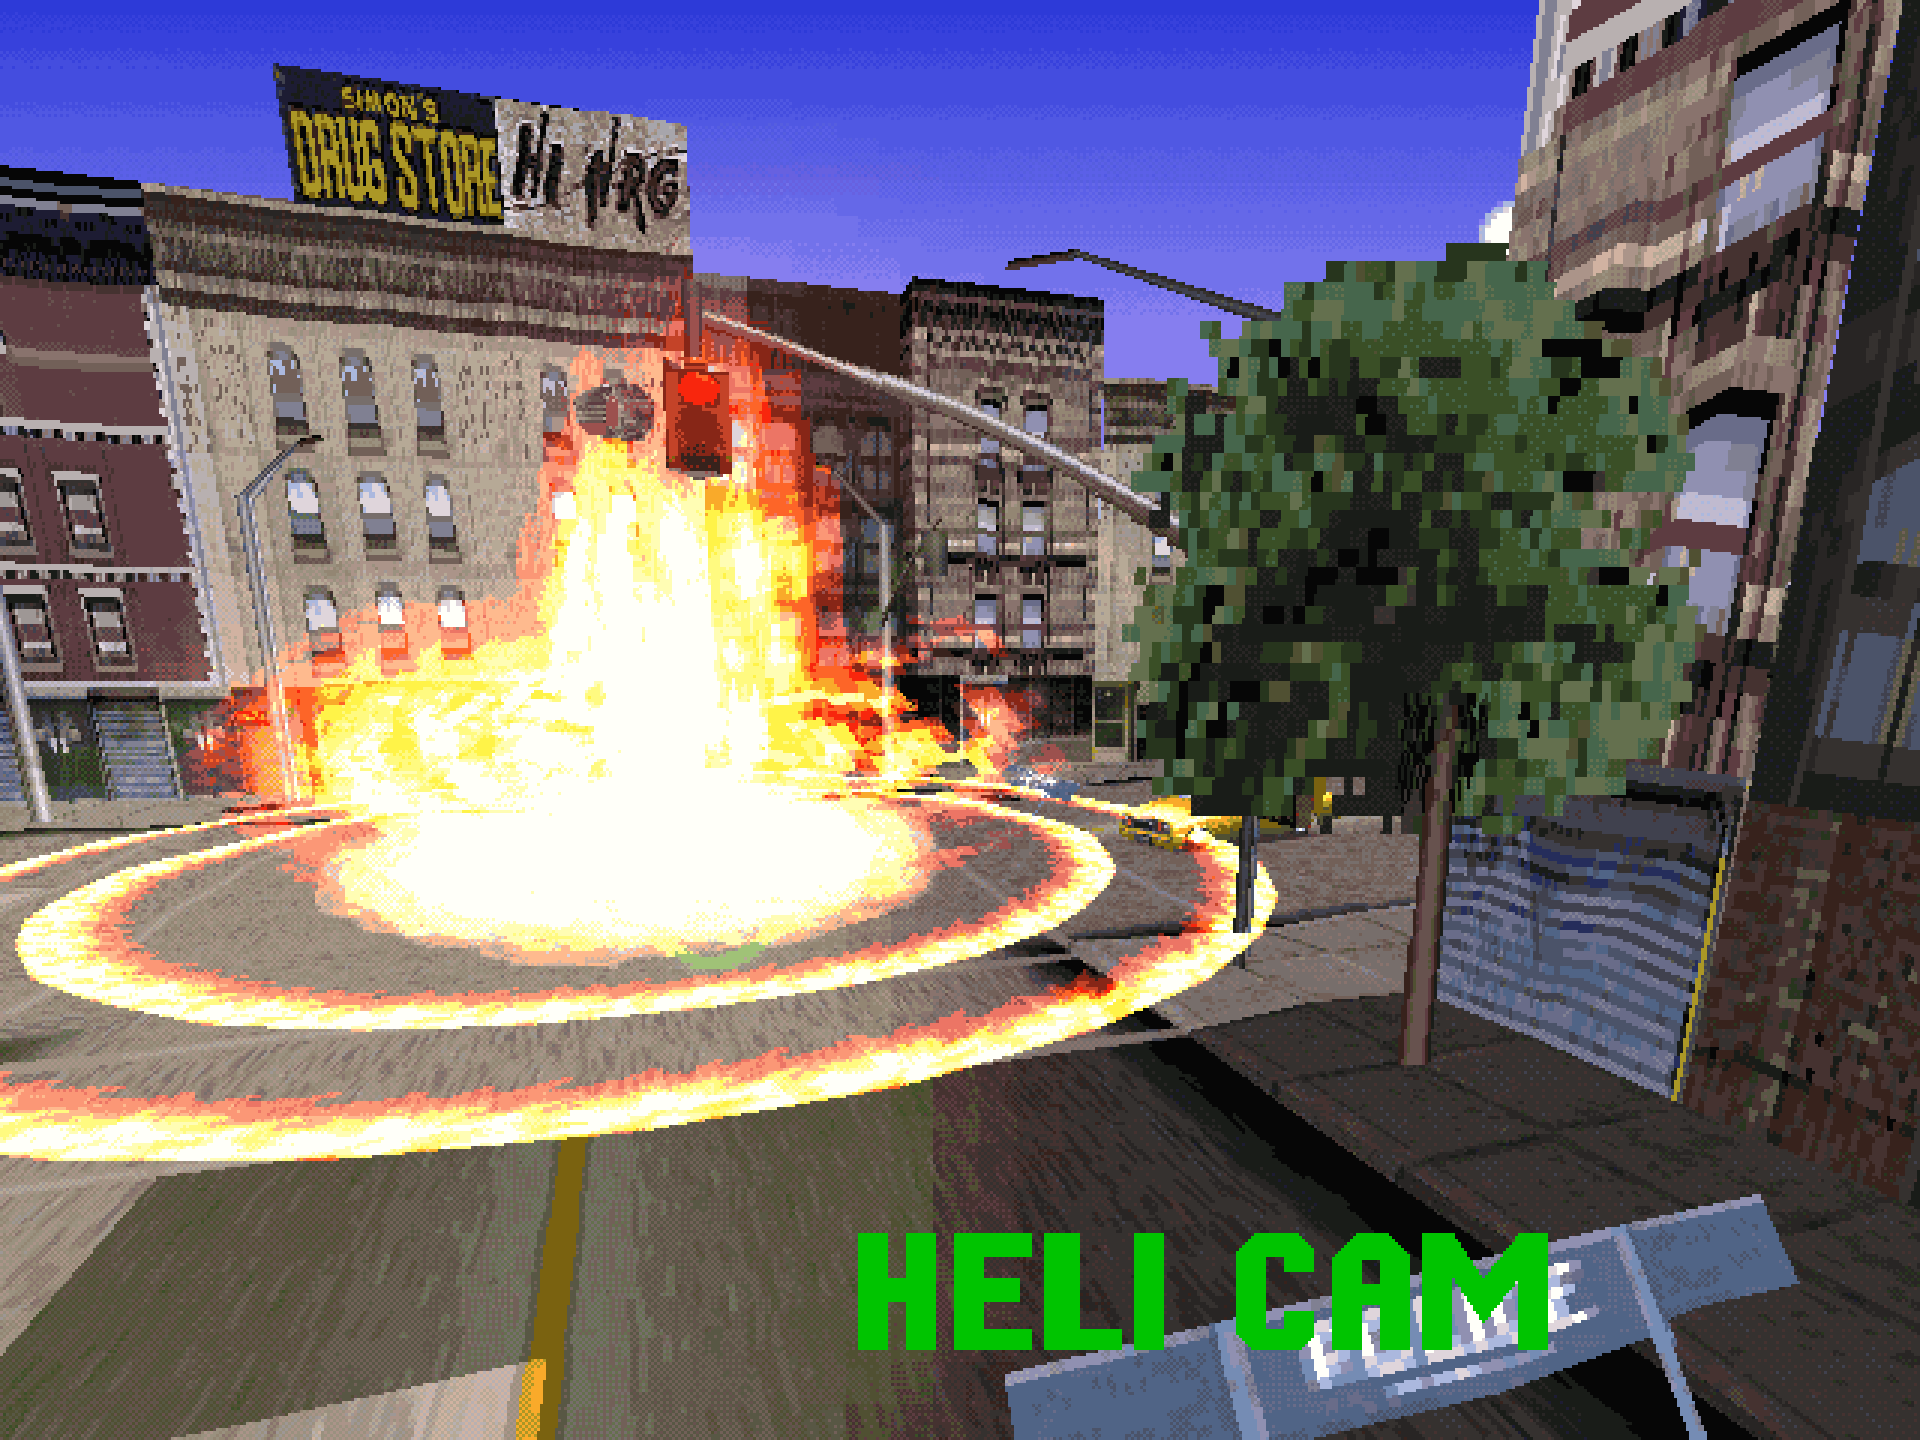 A bomb detonation in New York City in Die Hard Trilogy.